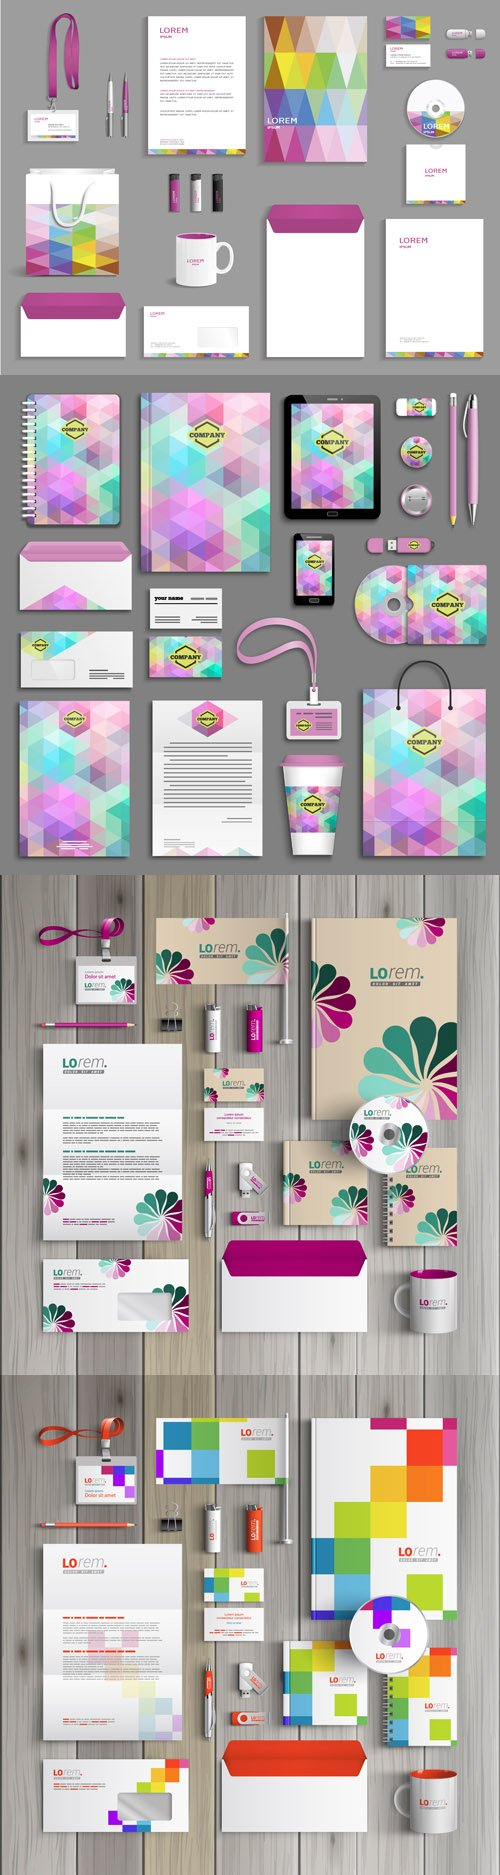 Corporate identity templates - Vectors